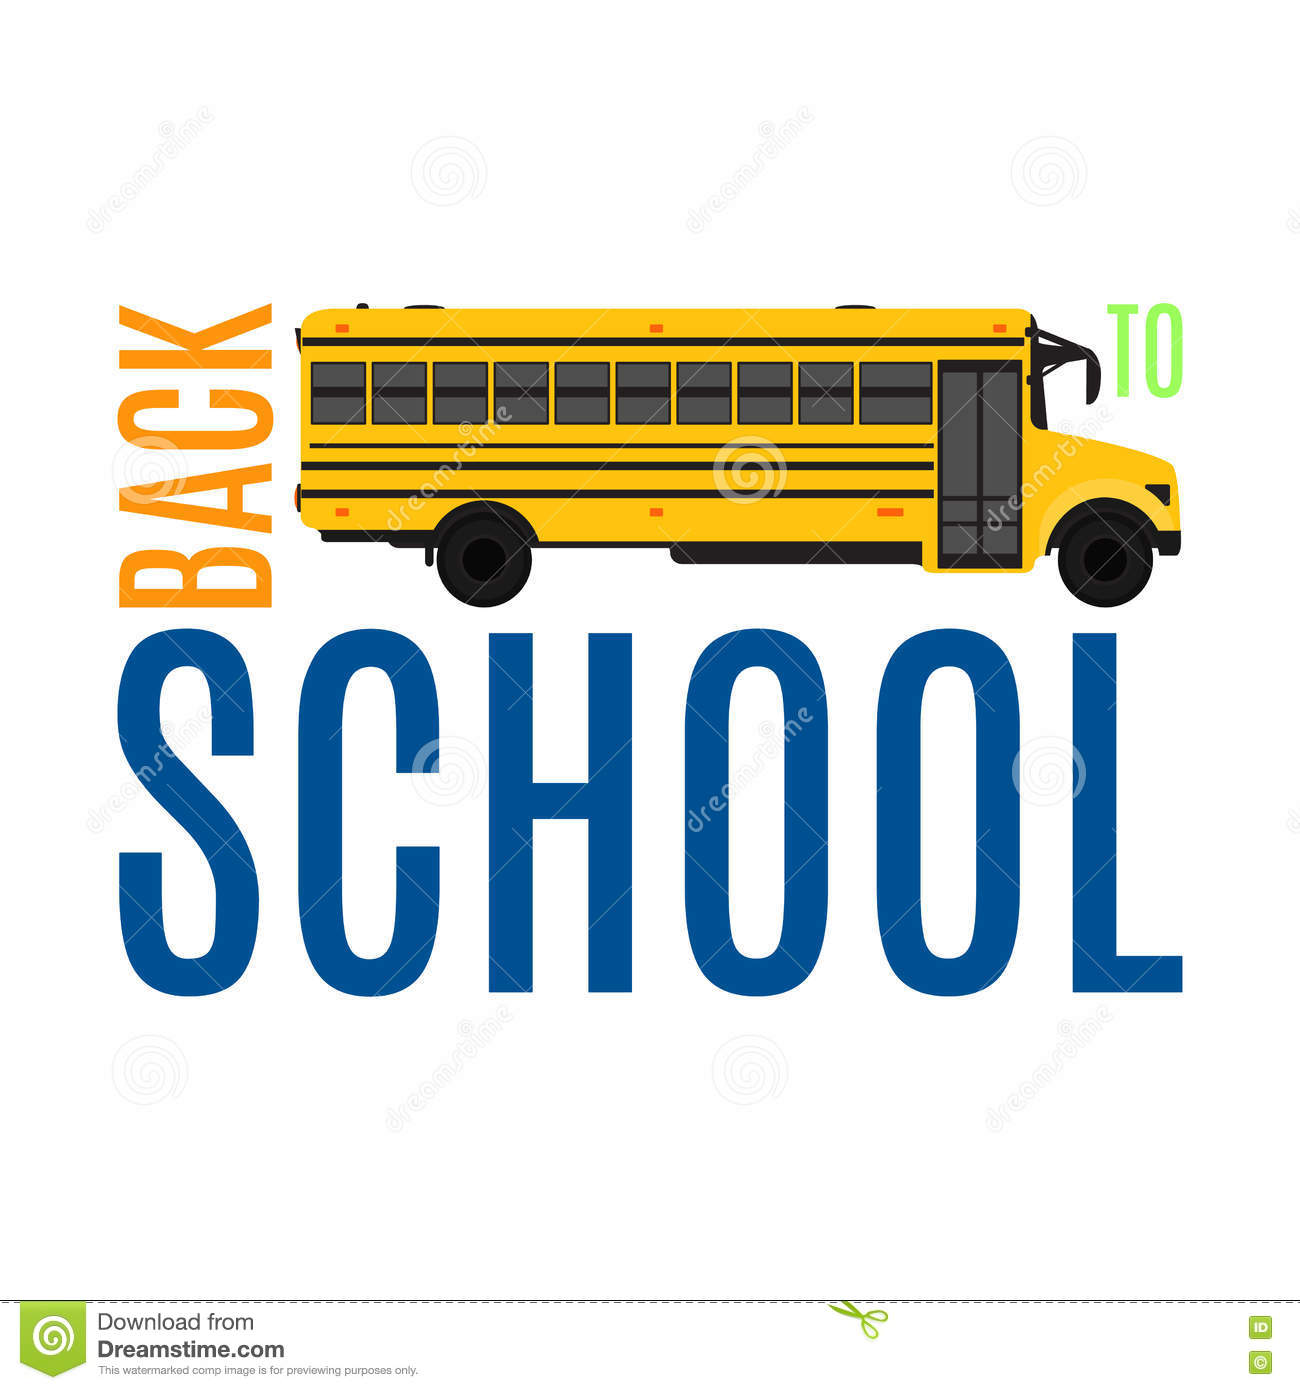 Poster design download - Back To School Poster Design Stock Vector